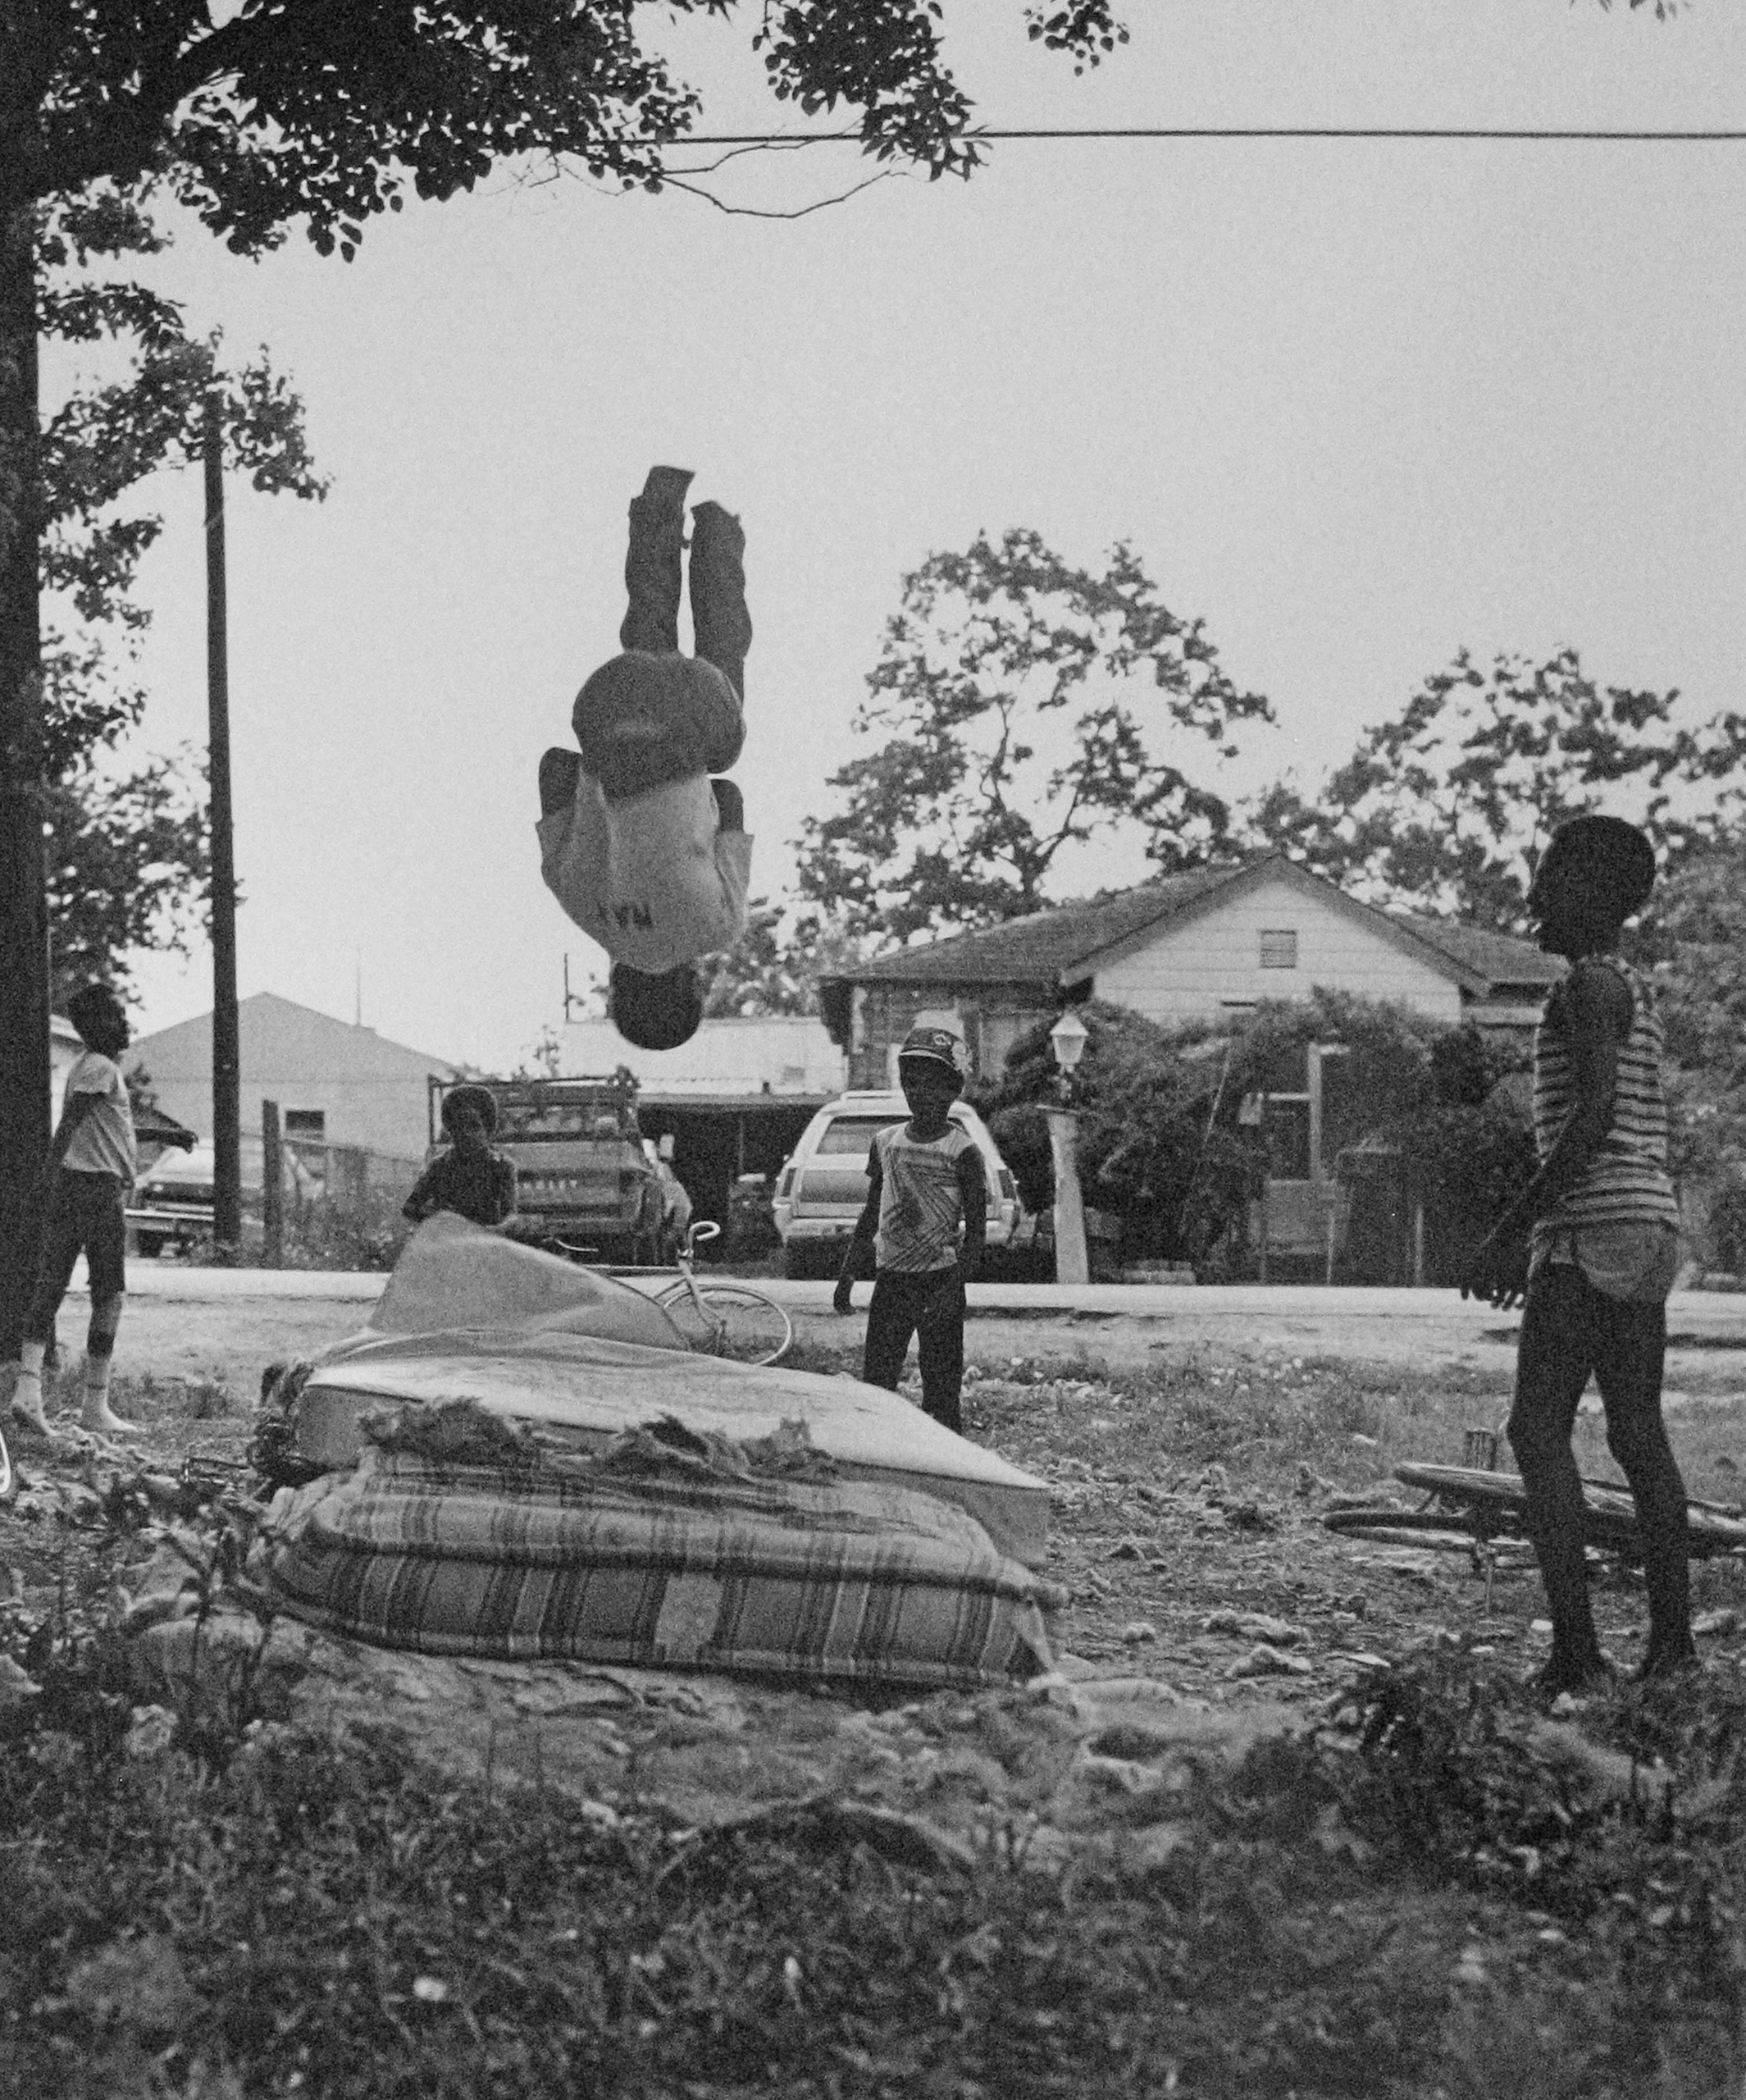 Bouncing Boys, 3rd Ward, Houston, TX, 1980